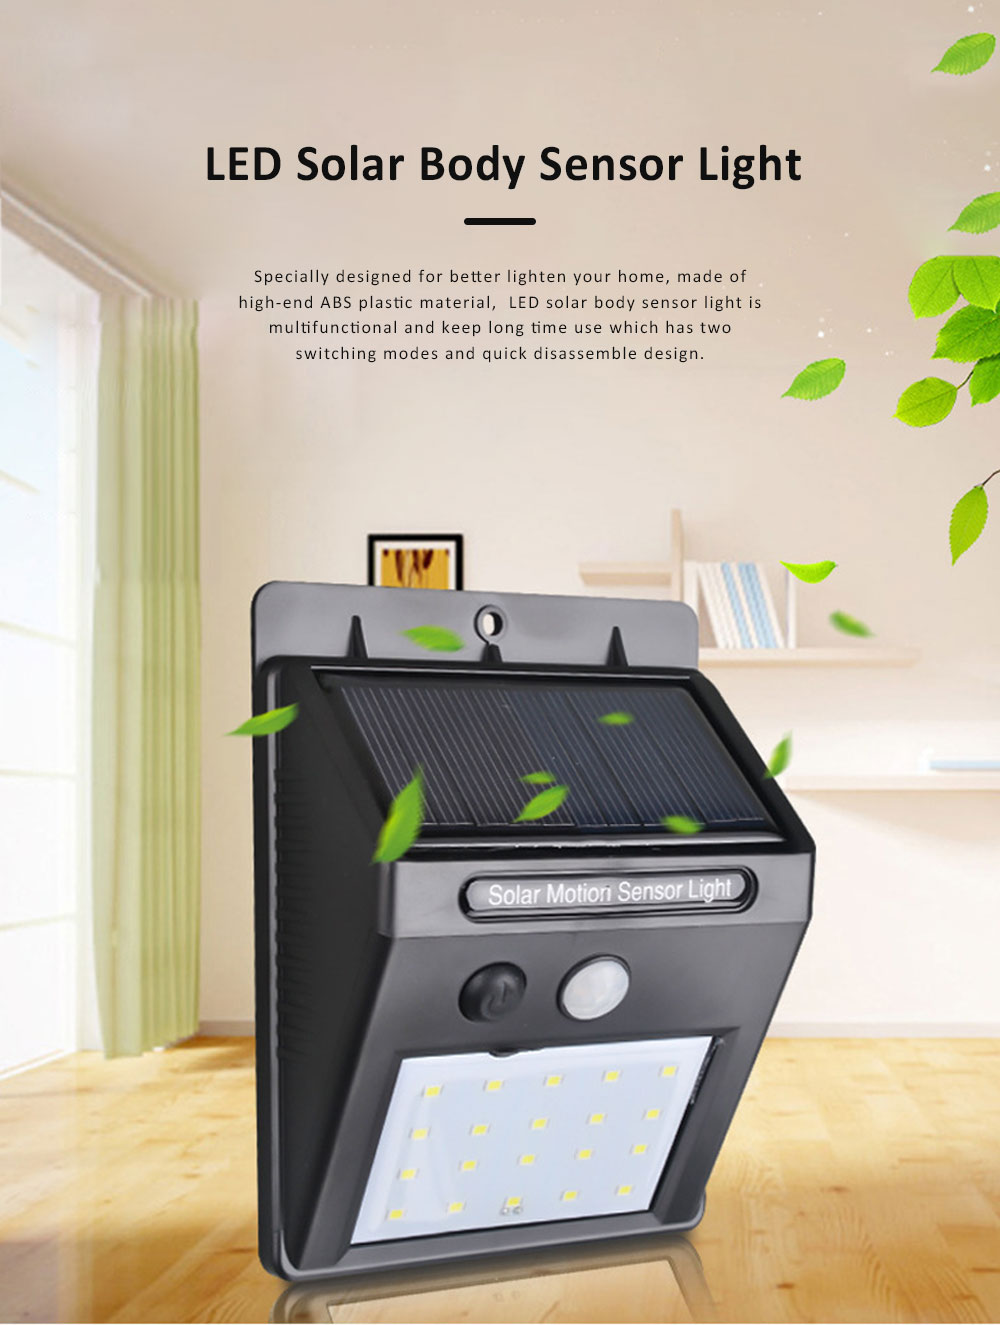 LED Solar Body Sensor Light, Courtyard Light with Two Switching Modes, Quick Disassemble Design LED Light 0